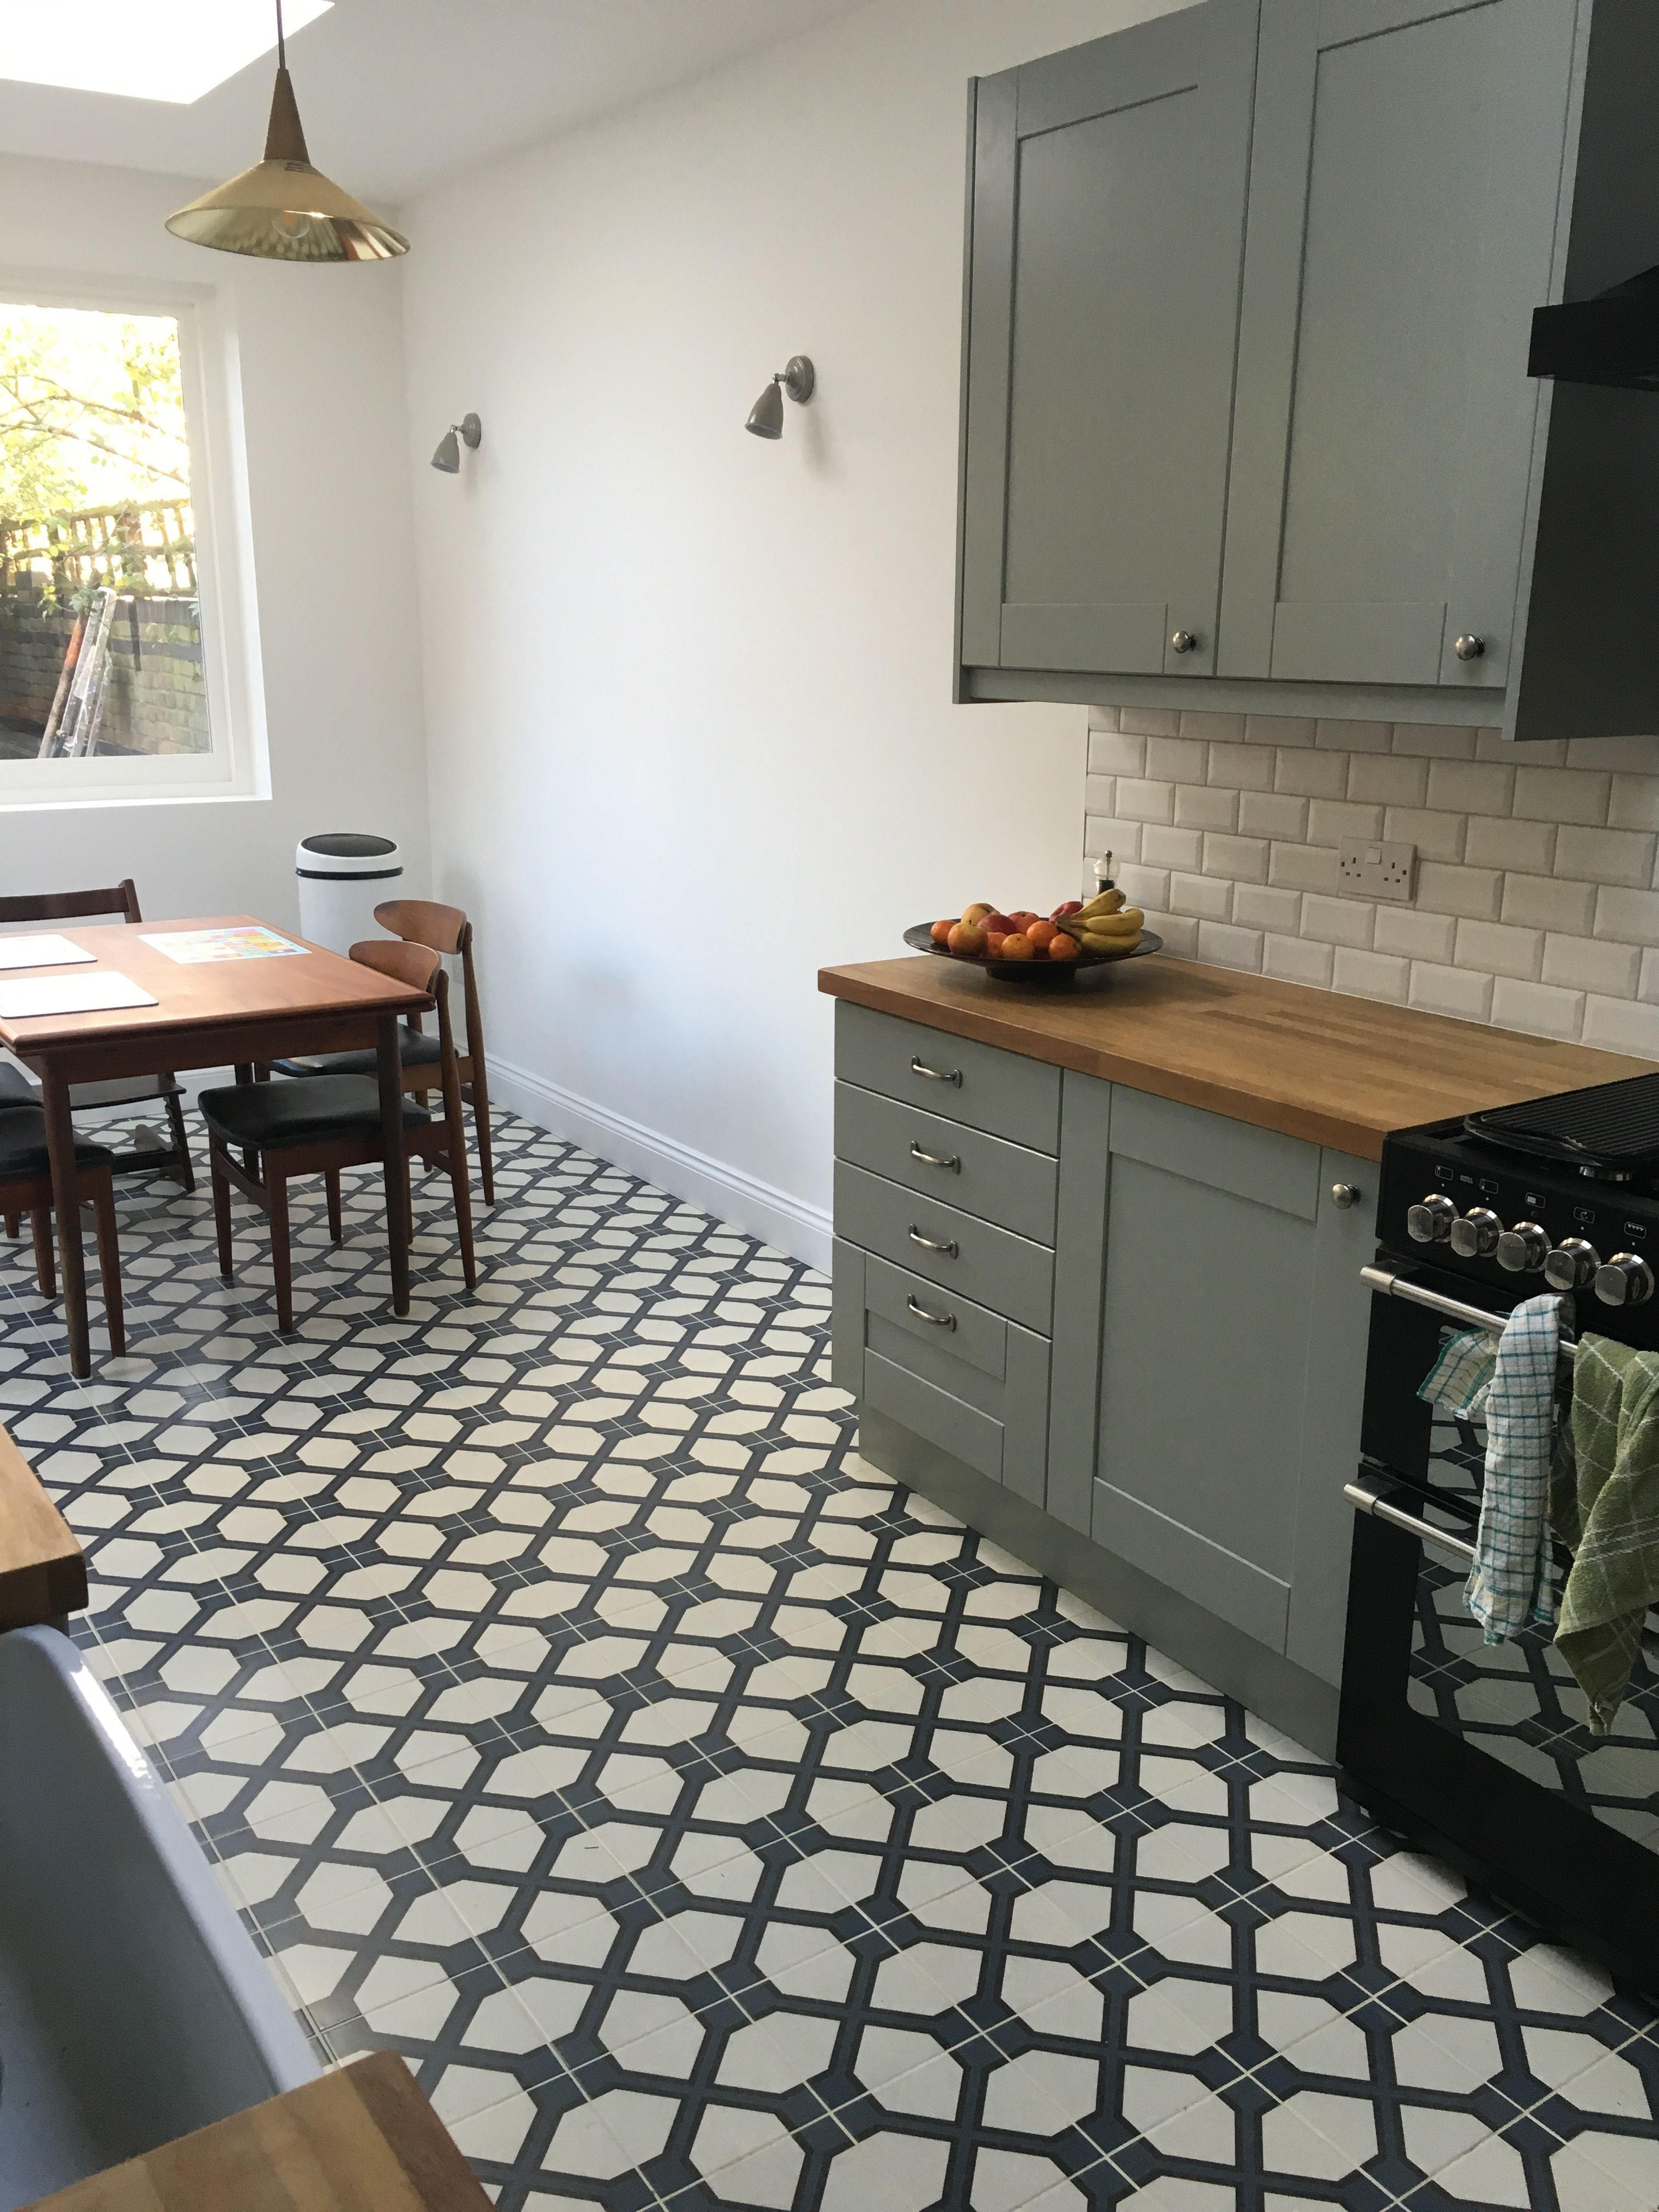 Diy kitchens linwood lamproom grey units fired earth trellis diy kitchens linwood lamproom grey units fired earth trellis lattice floor tiles dailygadgetfo Images